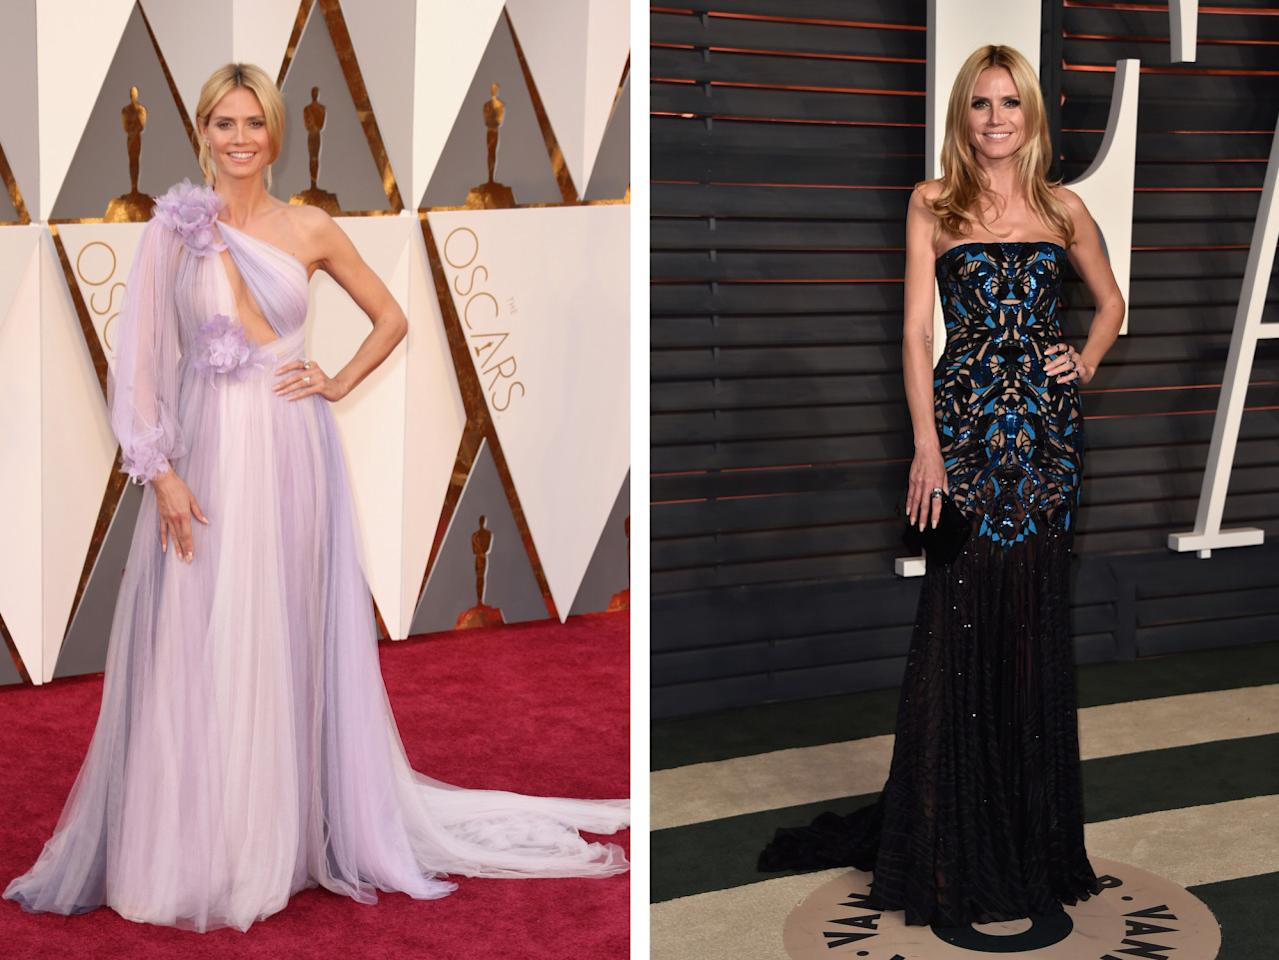 <p>Heidi Klum found herself on Worst Dressed lists for wearing this lilac Marchesa gown made with too much tulle. But the afterparty was her time for redemption, seeing as she changed into a simpler, black strapless gown from Atelier Versace.<i>(Photos: Getty Images)</i></p>